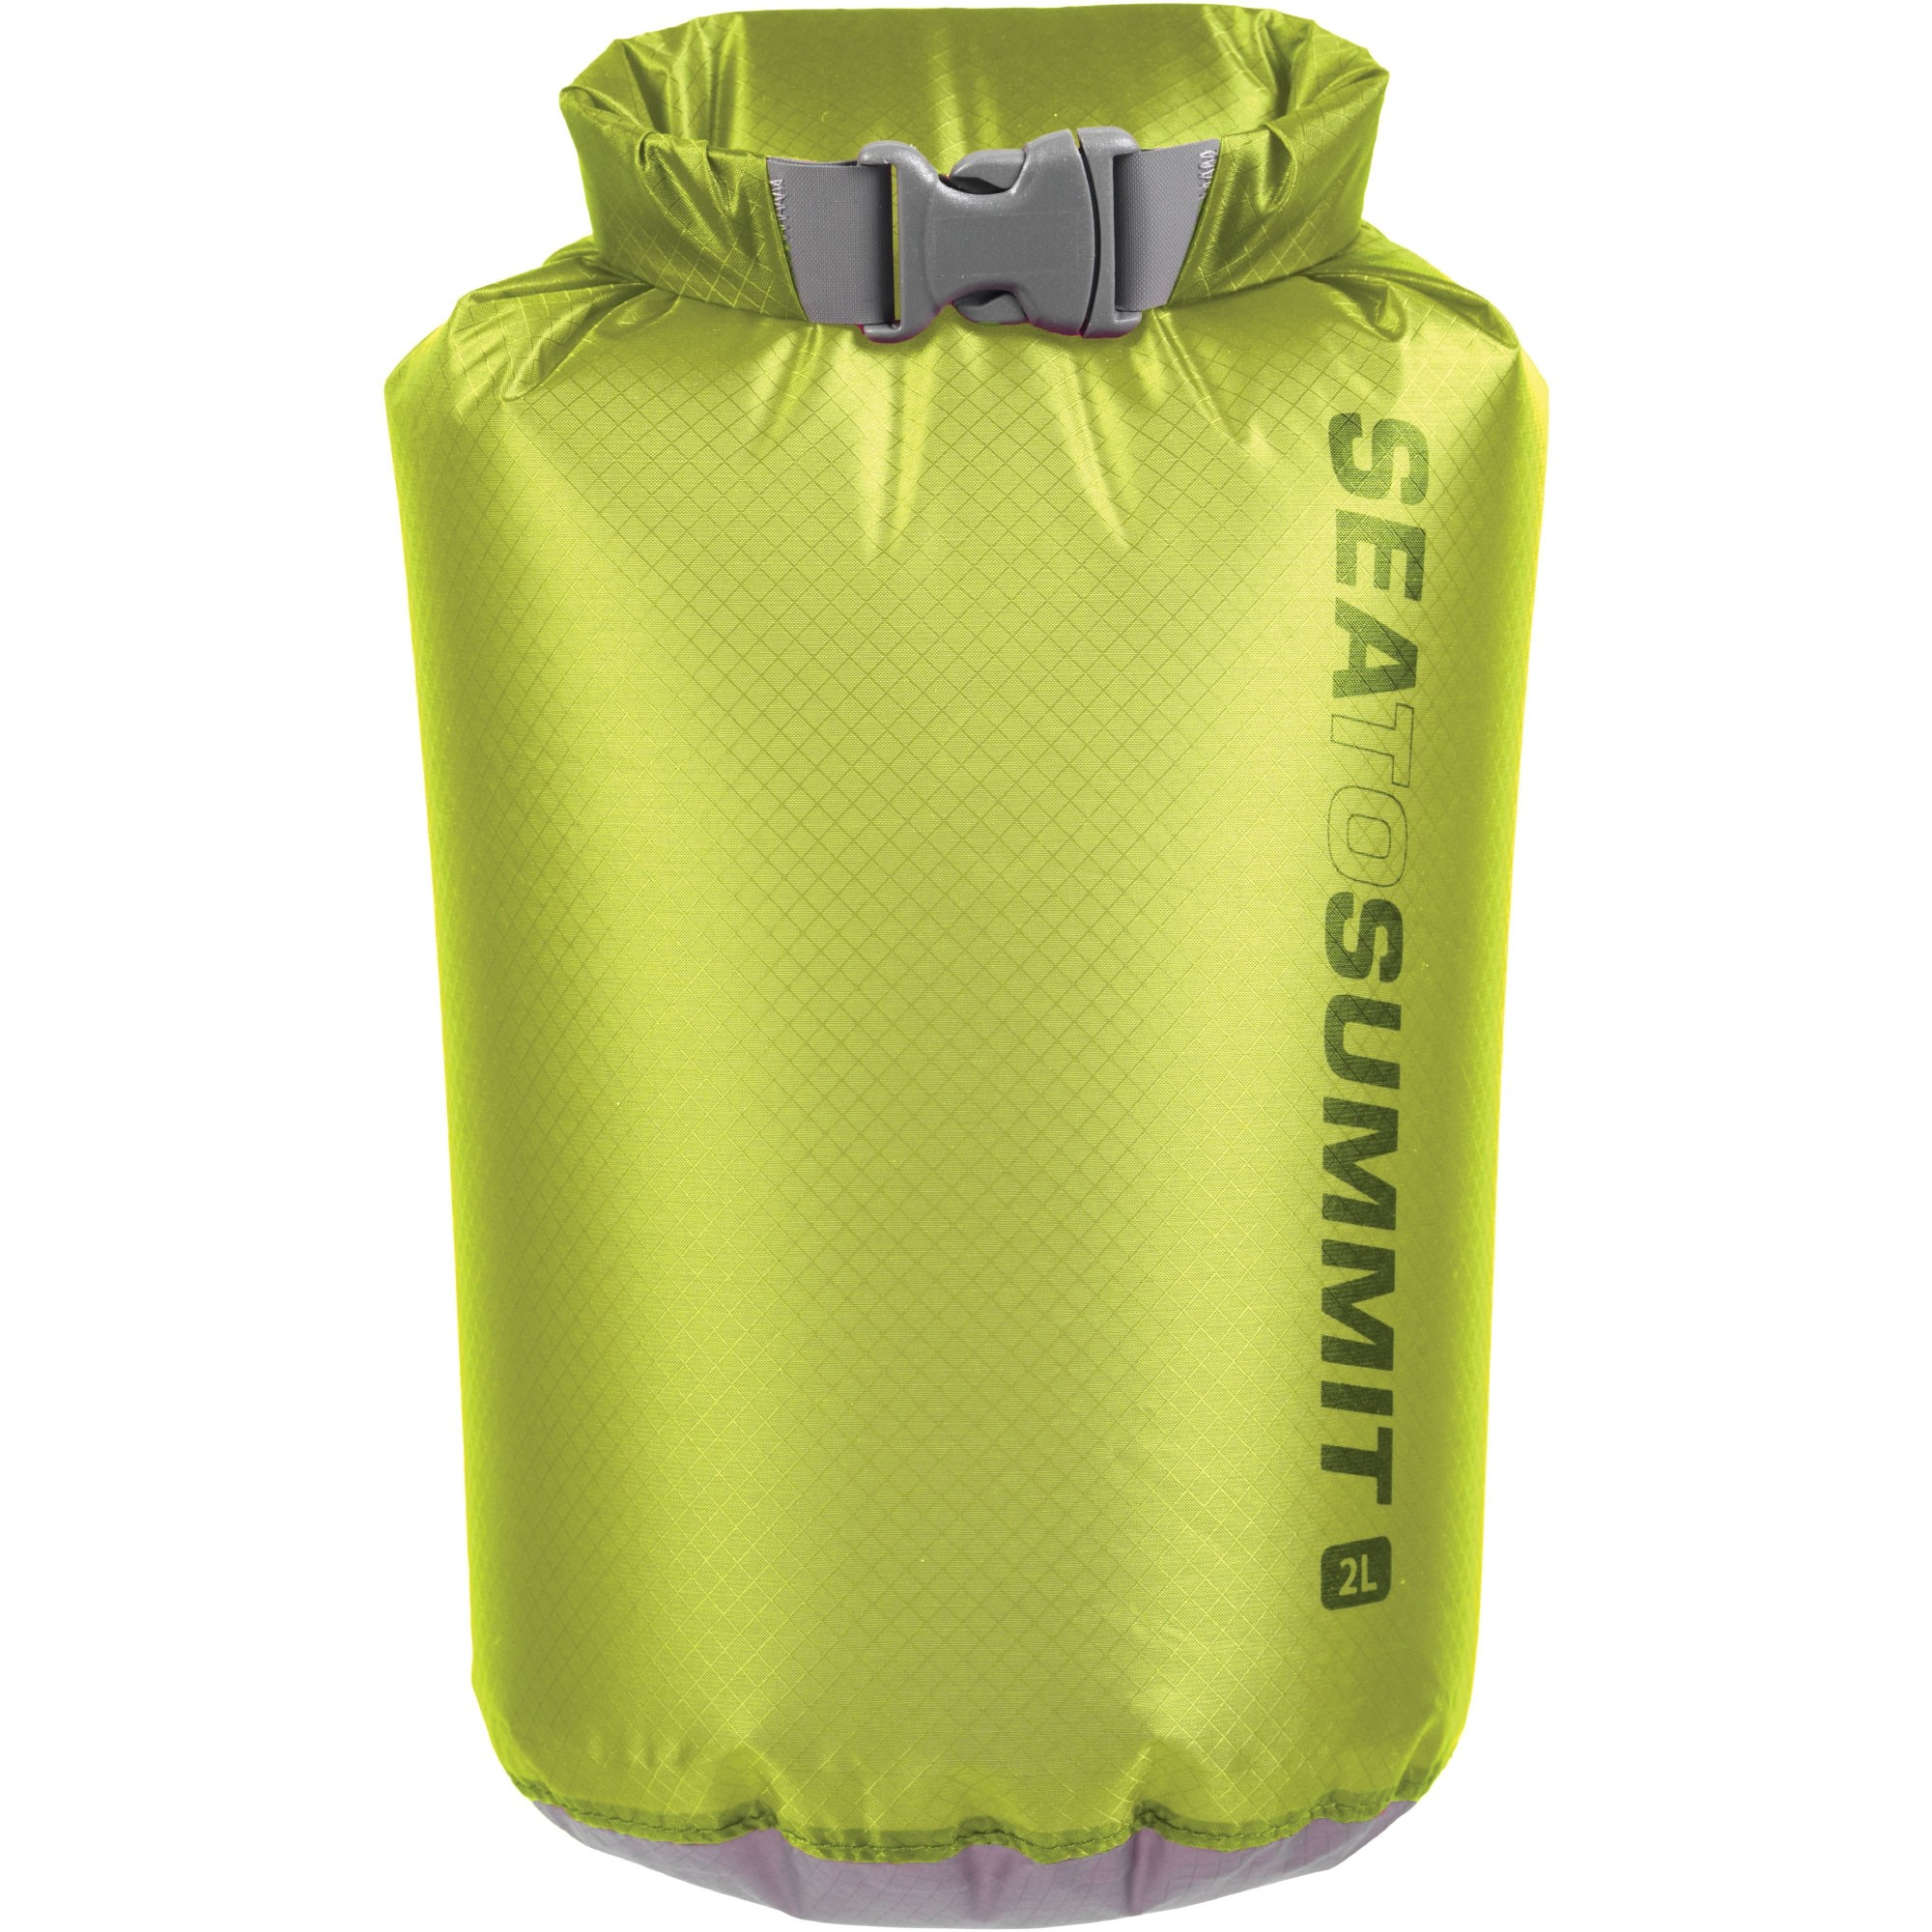 Sea to Summit Ultra-Sil Dry Sacks - Green 2 litre